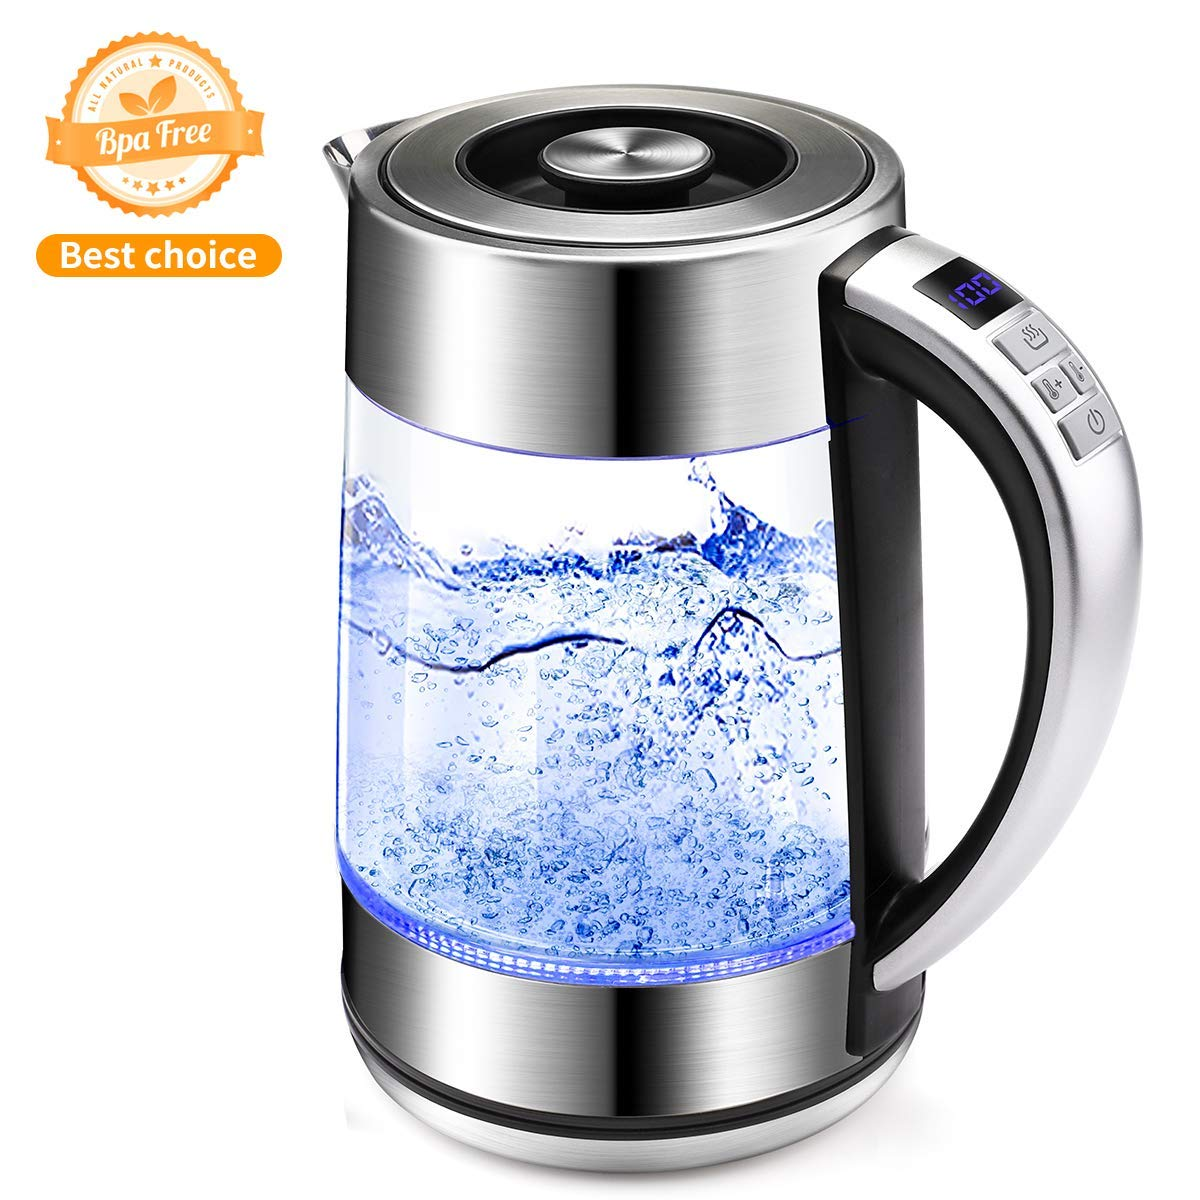 Electric Glass Kettle Cordless,1.7 L Morpilot Stainless Steel Kettle Blue Illumination LED Light,Fast Boil Kettles Auto Shut Off, BPA Free Electric Water Tanks Kettle for Coffee,Tea, Espresso,Formula